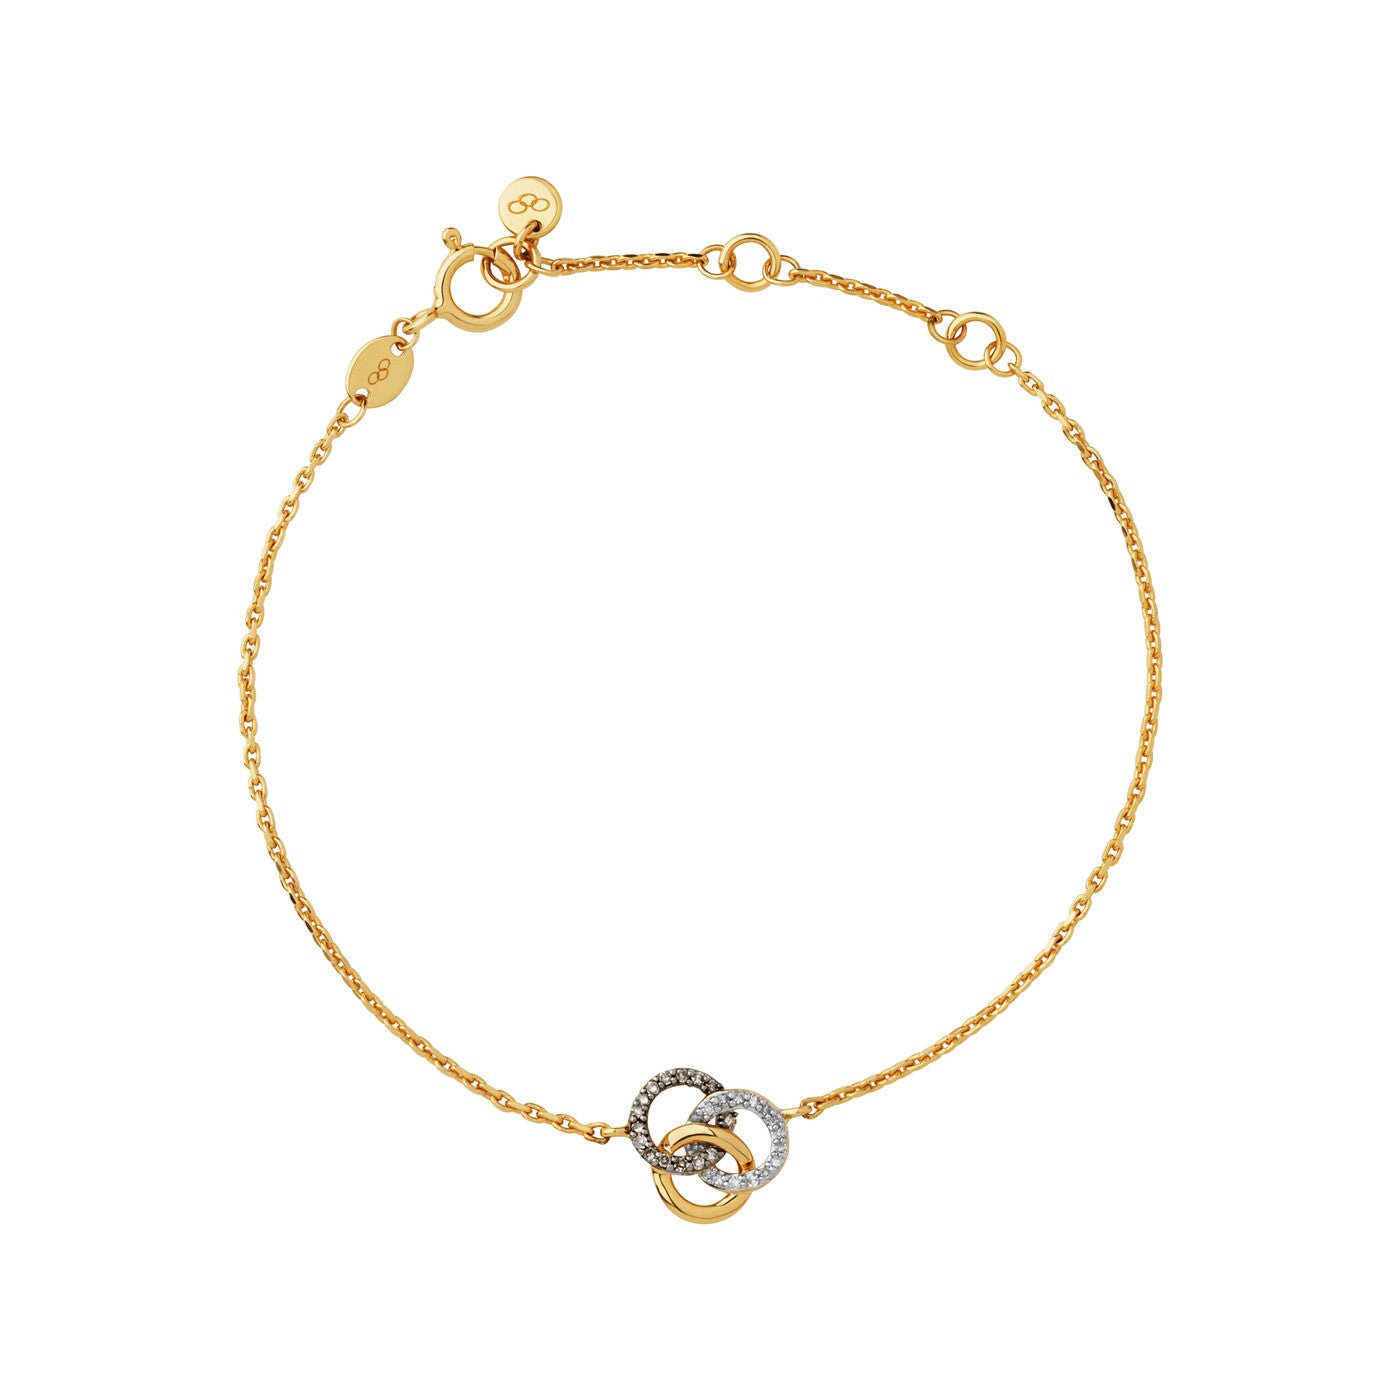 Links of London Champagne Bracelet - 5010.3474